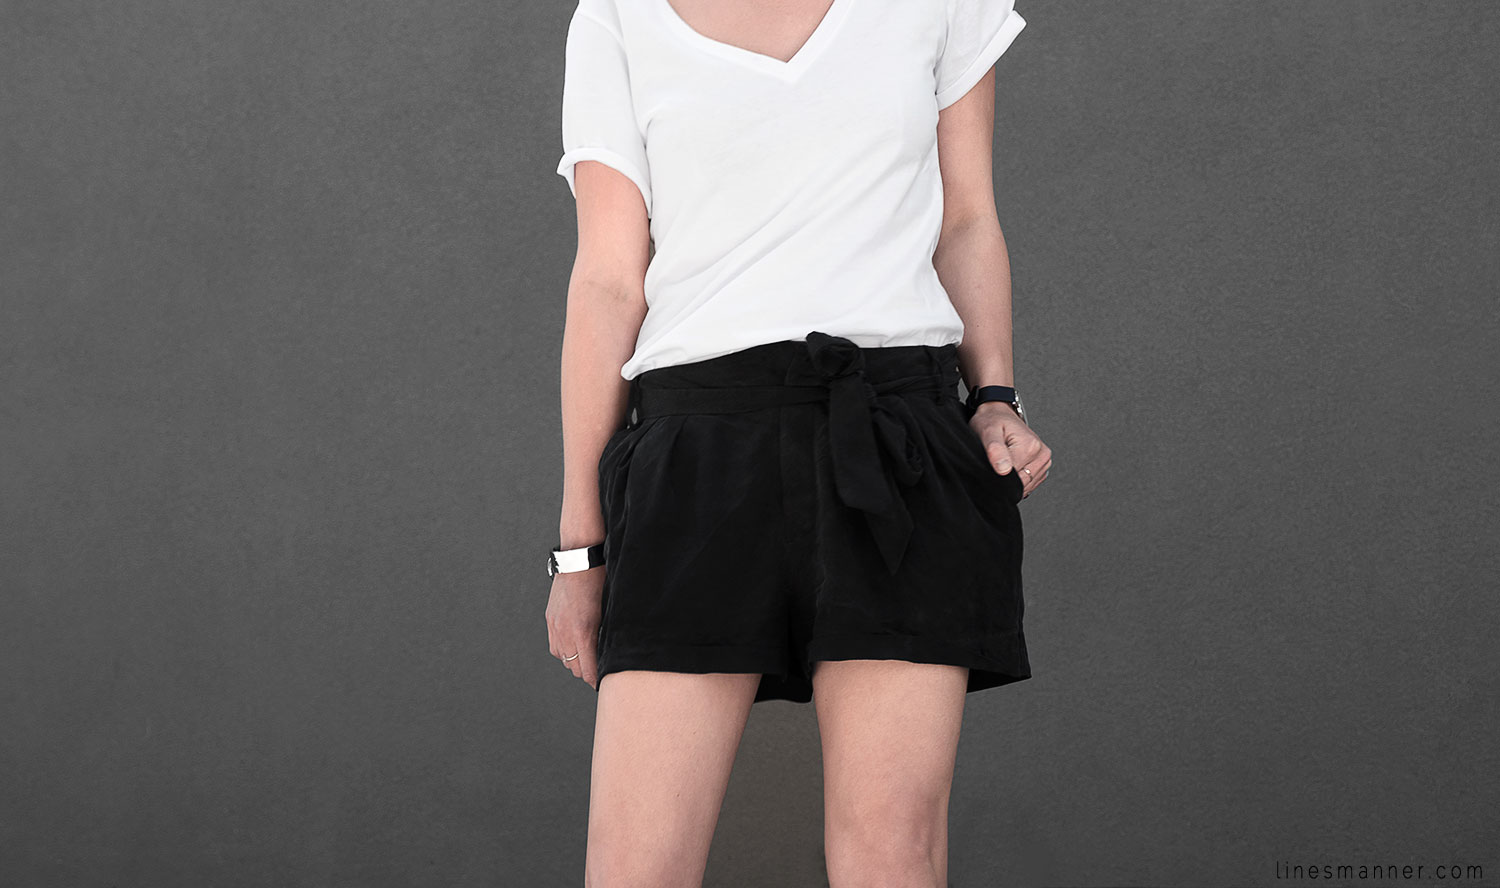 Lines-Manner-Minimal-Monochrome-Simplicity-Ethical-Organic-Fashion-Outfit-Details-Essentials-Black_and_White-Quality-Bon_Label-V_neck-Bright-3